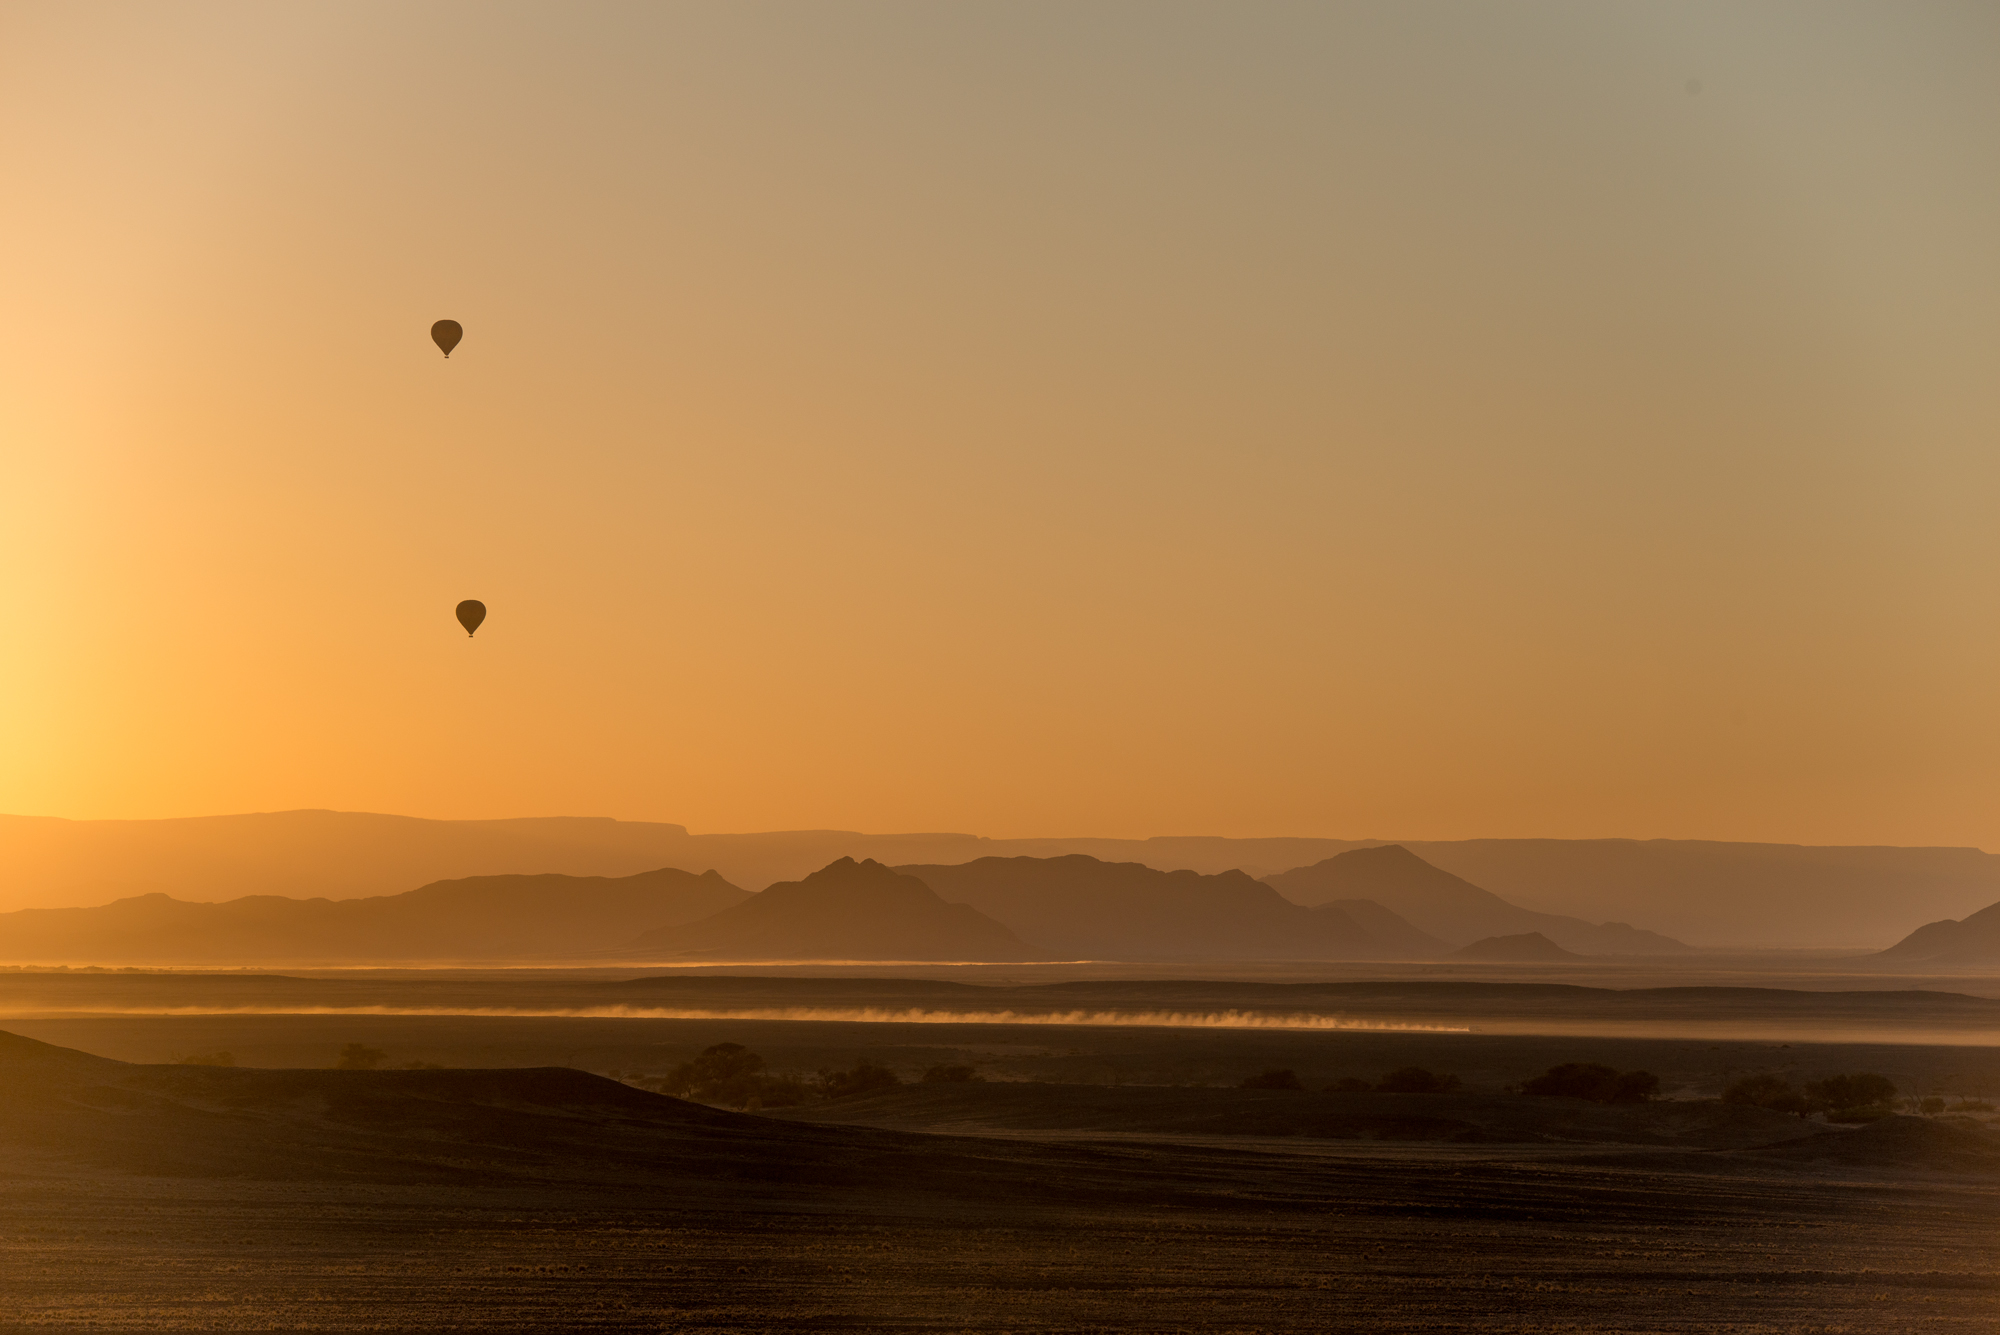 Namib-Naukluft Park Hot Air Ballons